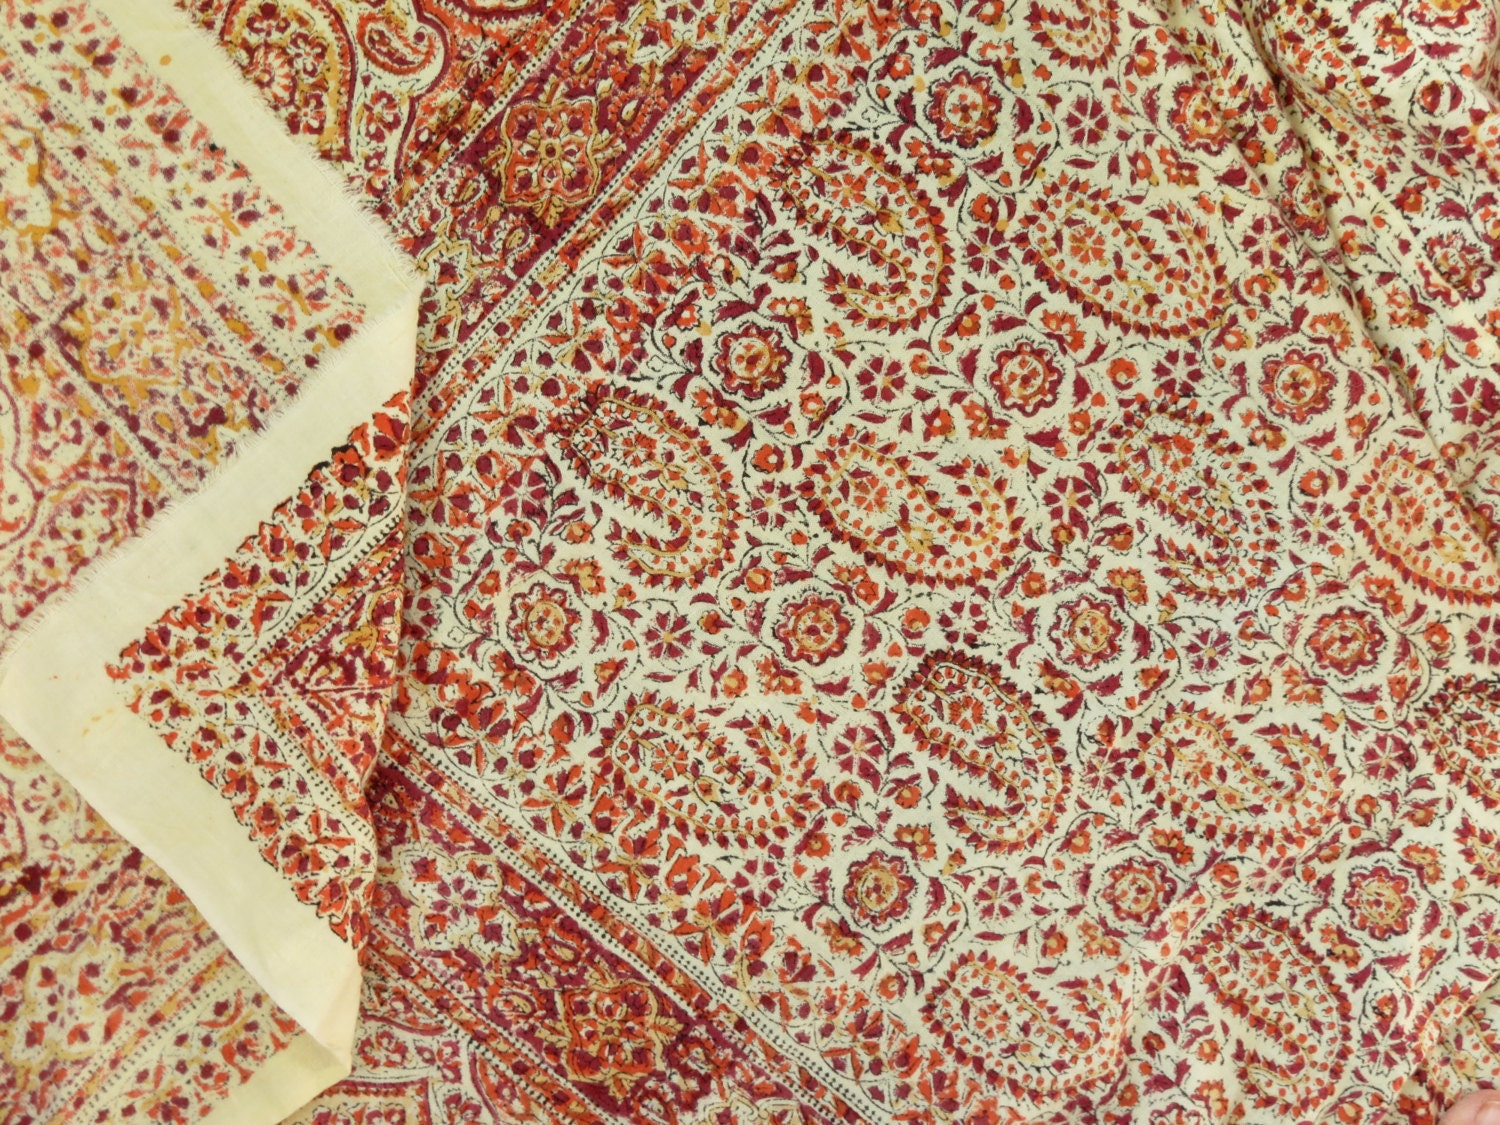 Bedspread designs texture - Vintage Original Indian Block Print Bed Spread Vintage Indian Block Print Fabric Vintage Indian Batik Bed Spread Boho Decor